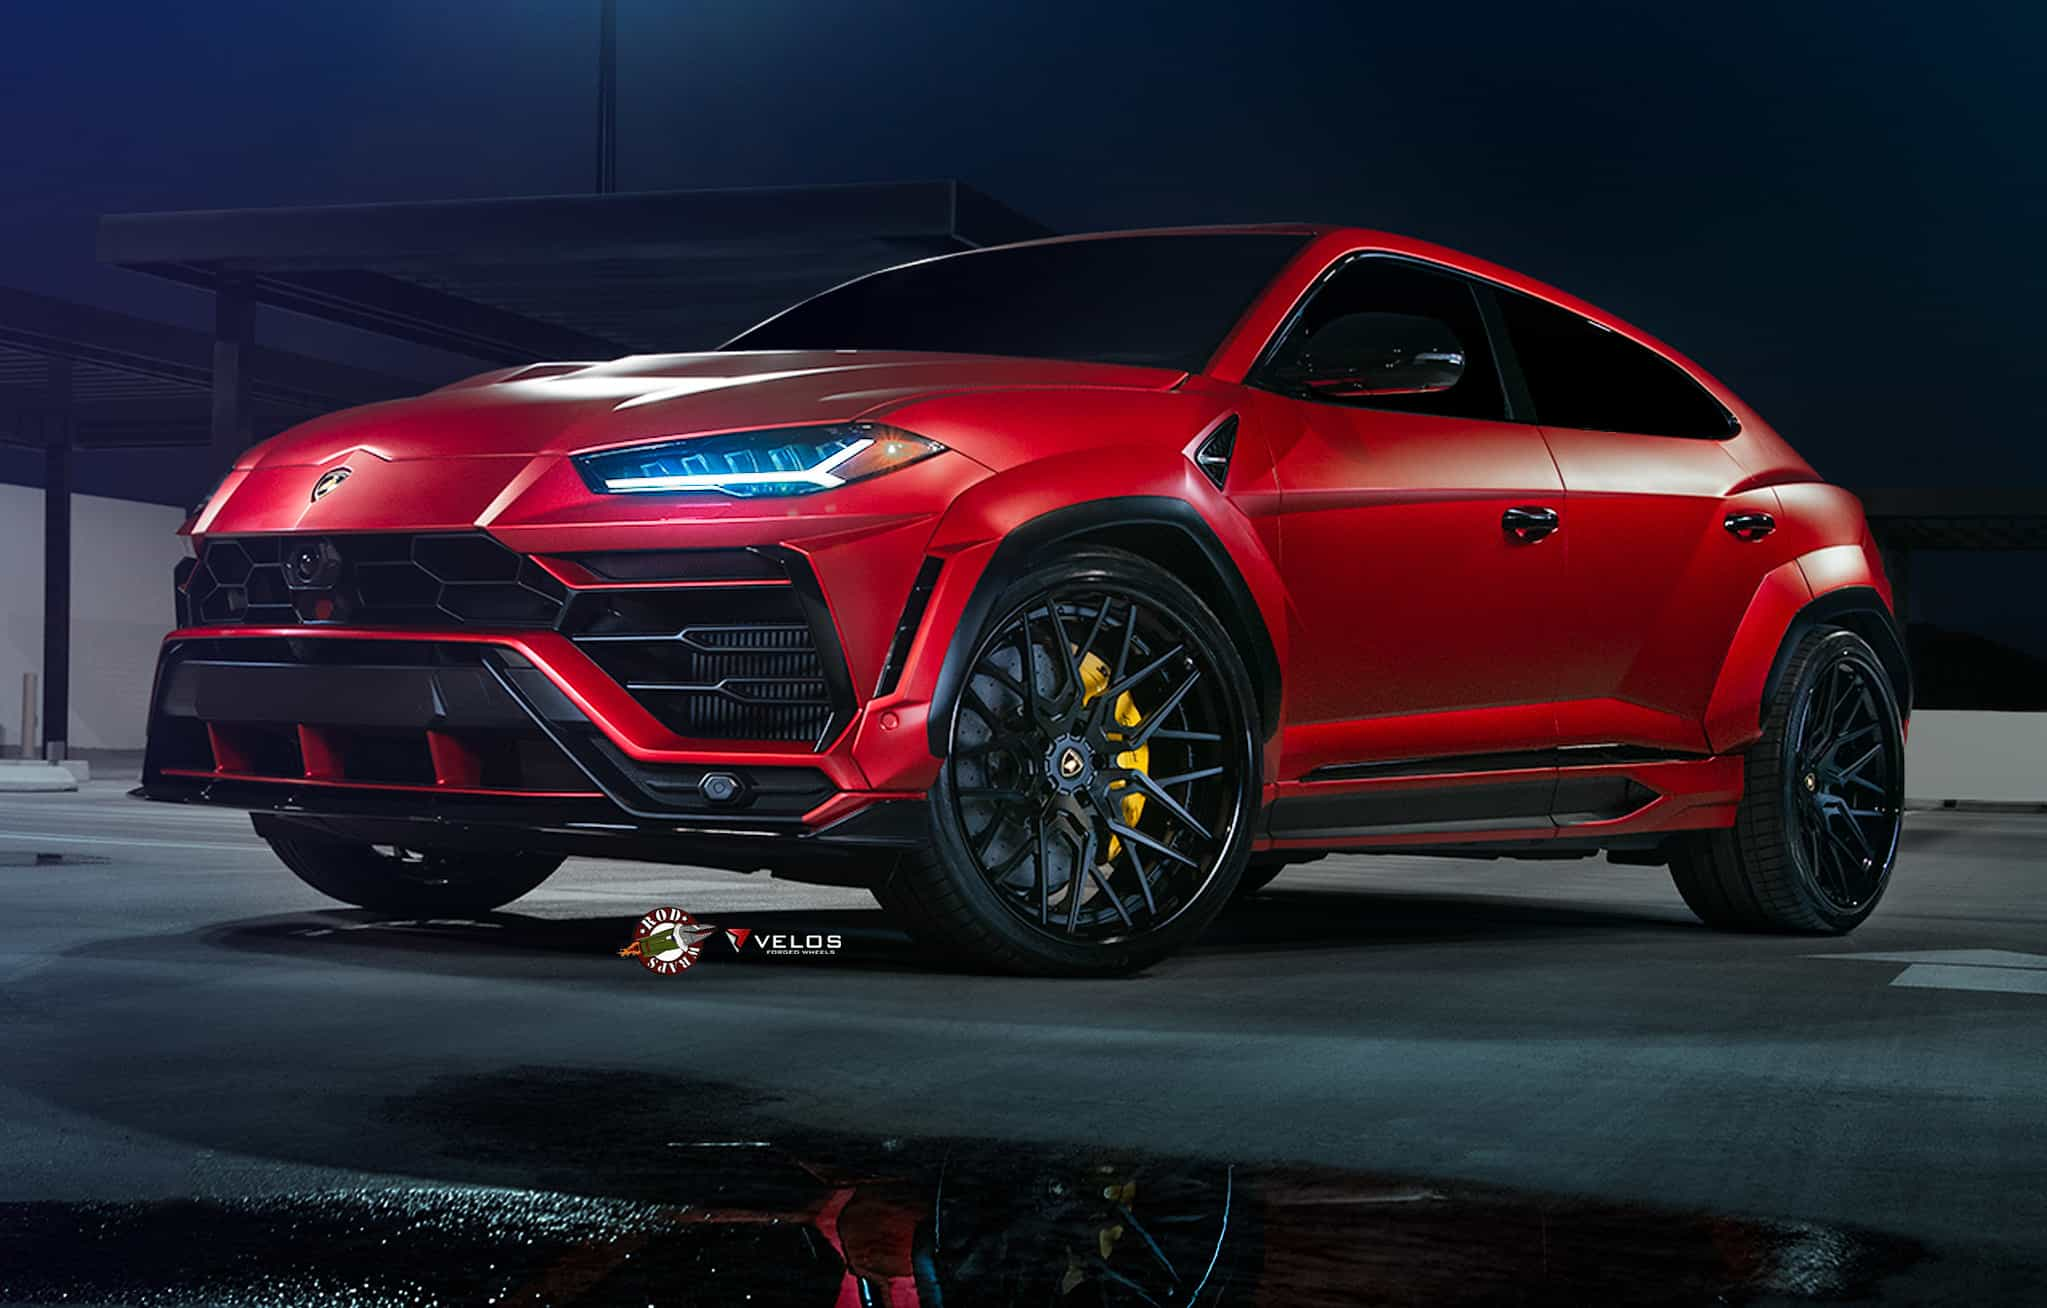 "Red Widebody Lamborghini Urus on 24"" Velos Wheels"